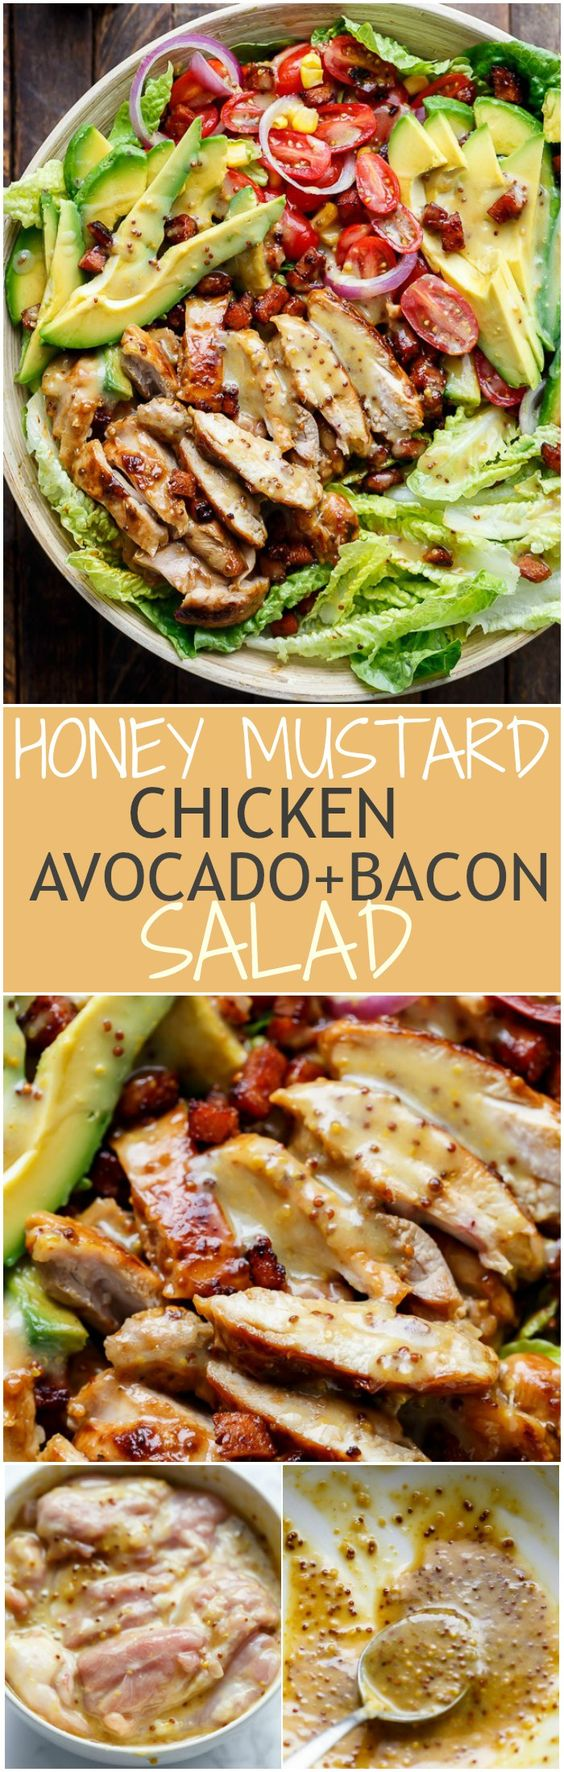 Honey Mustard Chicken, Avocado + Bacon Salad, with a crazy good Honey Mustard dressing withOUT mayonnaise or yogurt! And only 5 ingredients! | http://cafedelites.com: